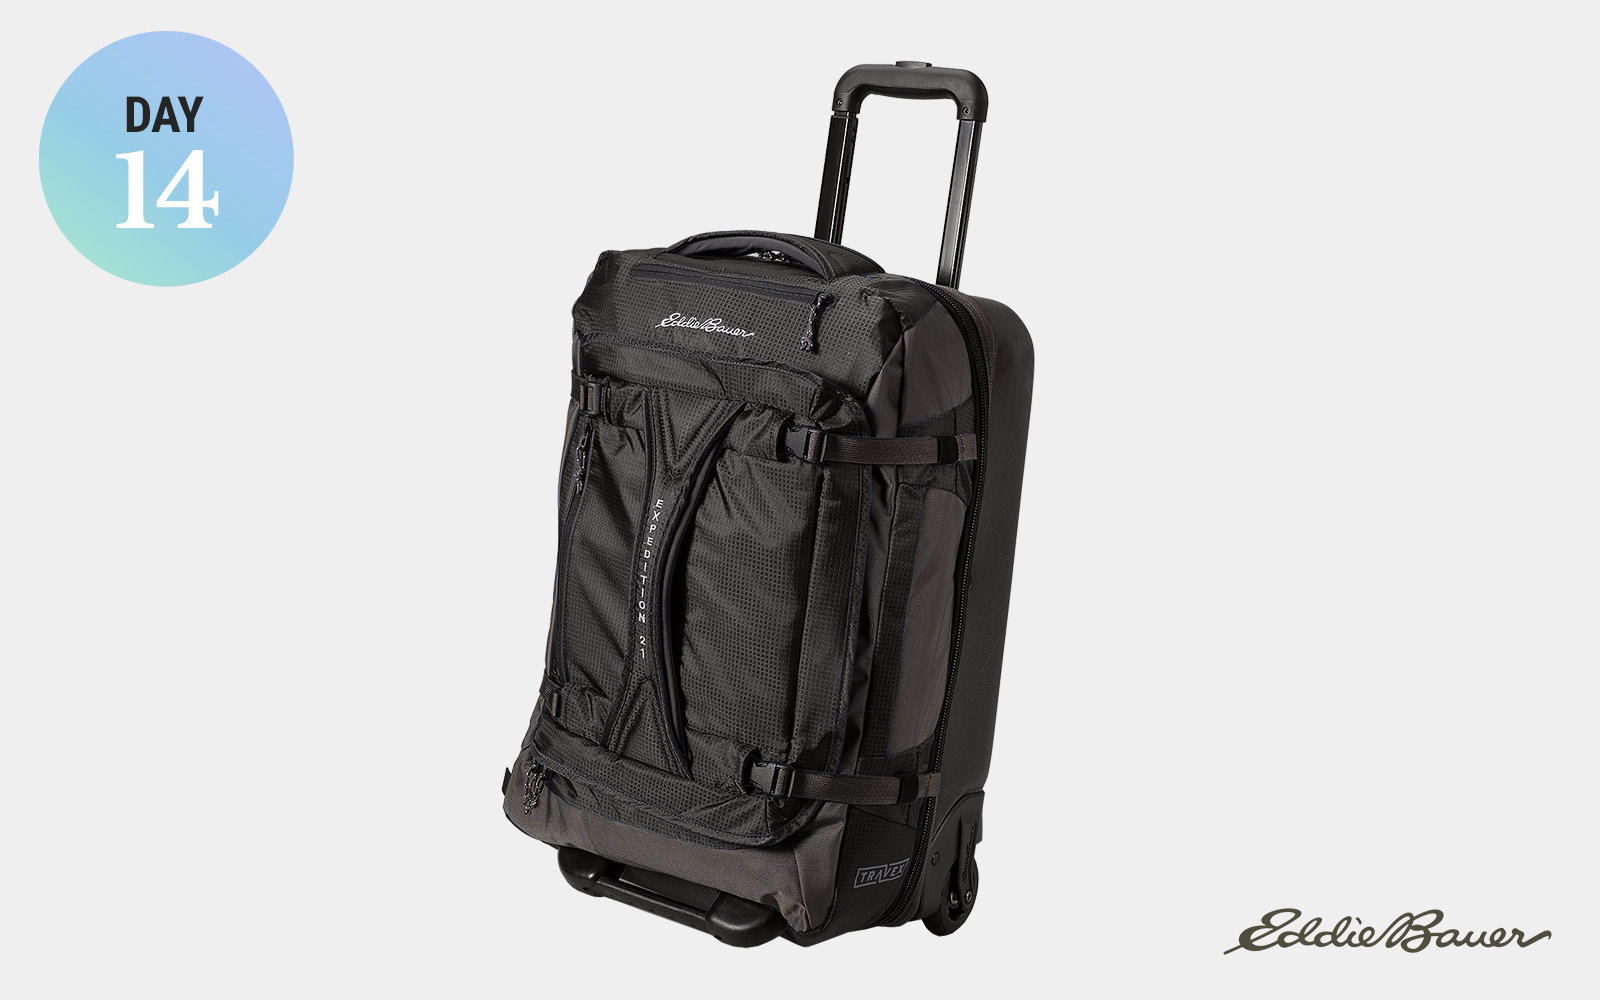 Eddie Bauer Expedition Drop Bottom Rolling Duffel